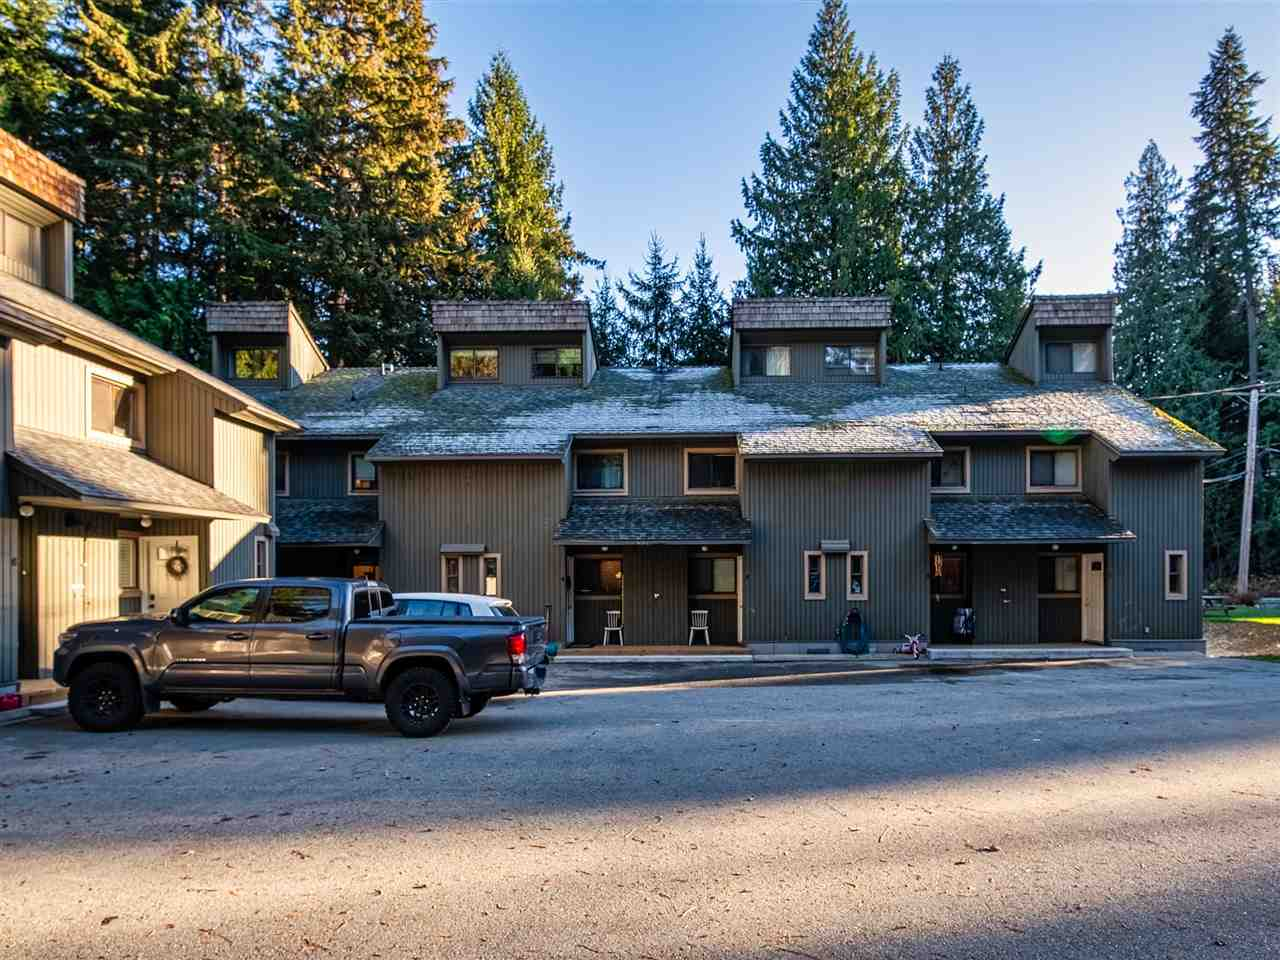 5 8072 TIMBER LANE - Alpine Meadows Townhouse for sale, 3 Bedrooms (R2516727) - #27